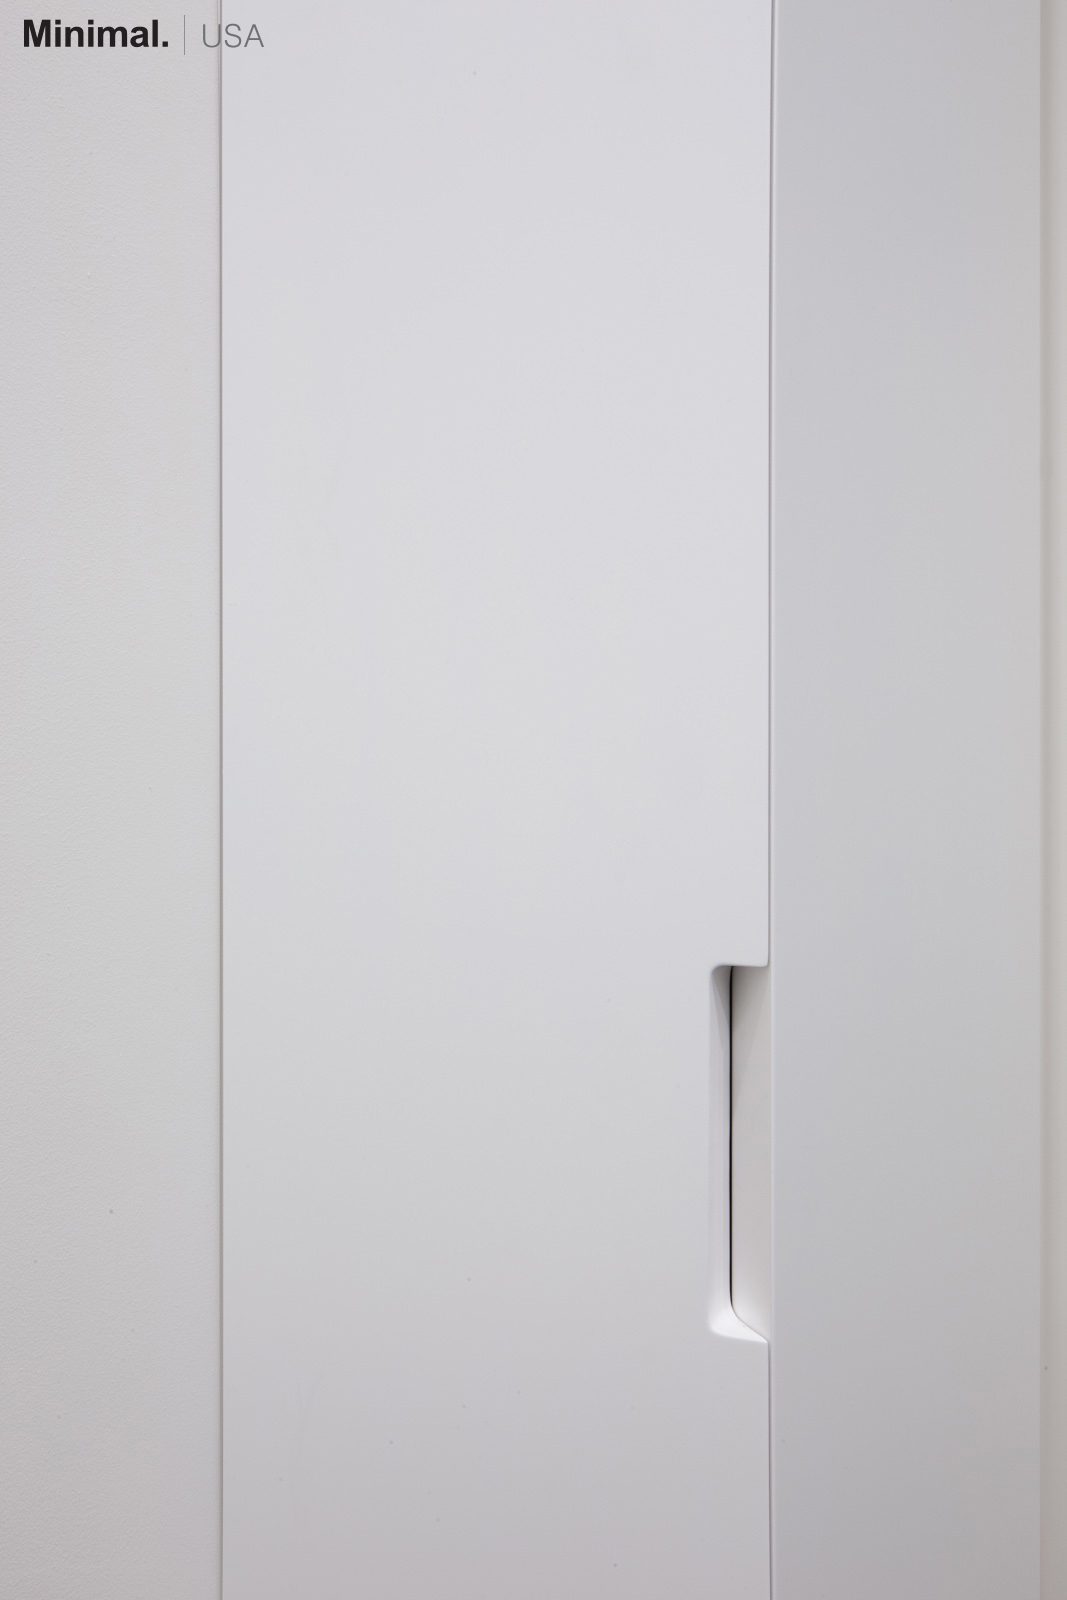 Minimal USA has designed a wardrobe that not only gives more storage space, but also represents an elegant solution for the overall design of the room.